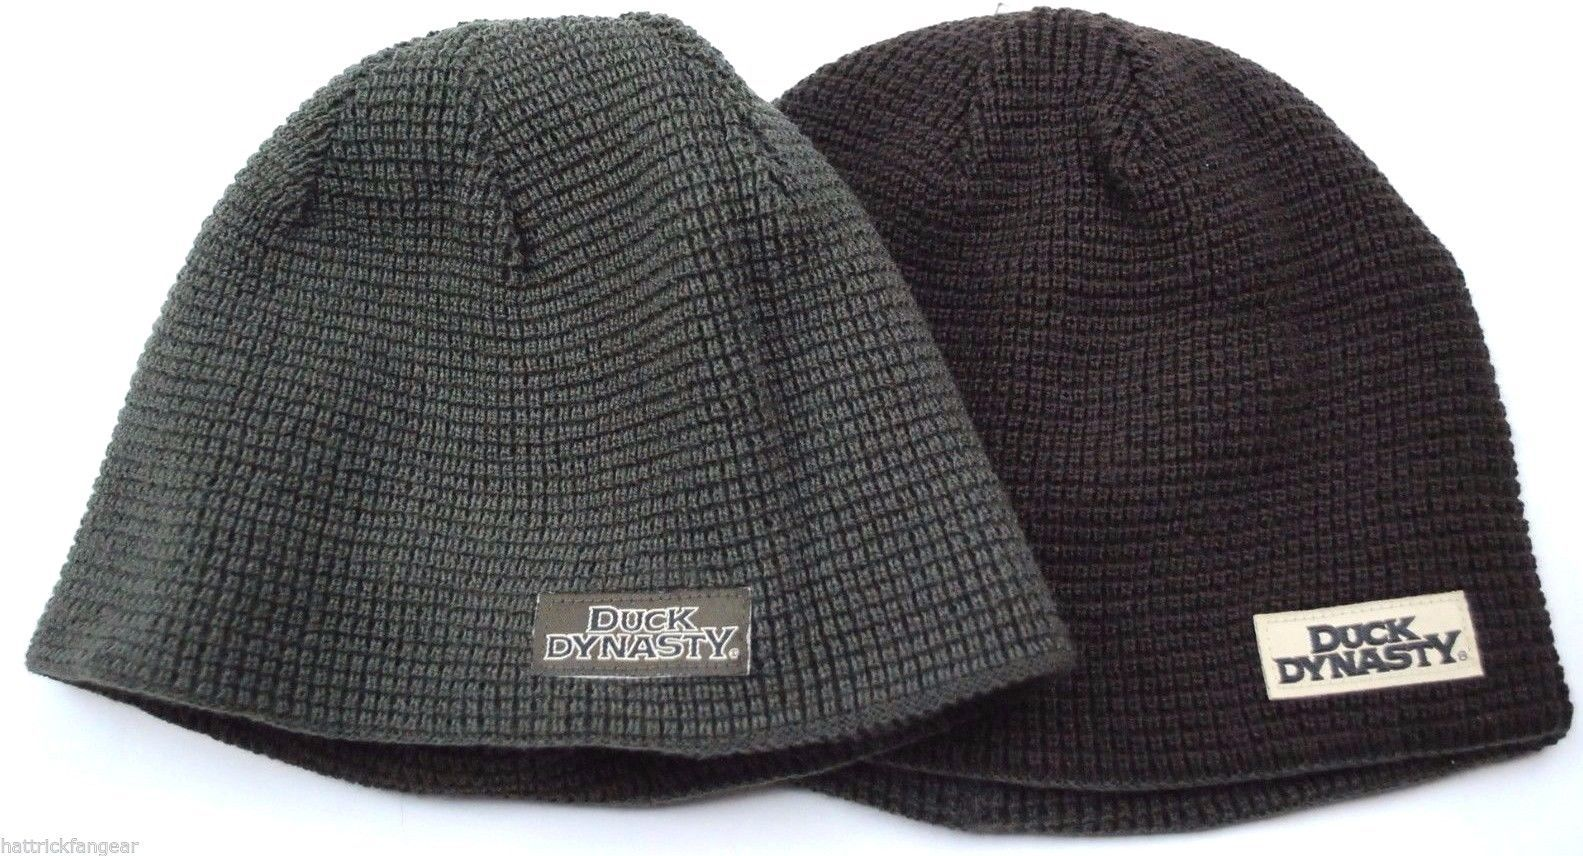 size 40 5b41d c83f7 DUCK DYNASTY REVERSIBLE WAFFLE KNIT WINTER HAT BEANIE TOQUE - OSFM